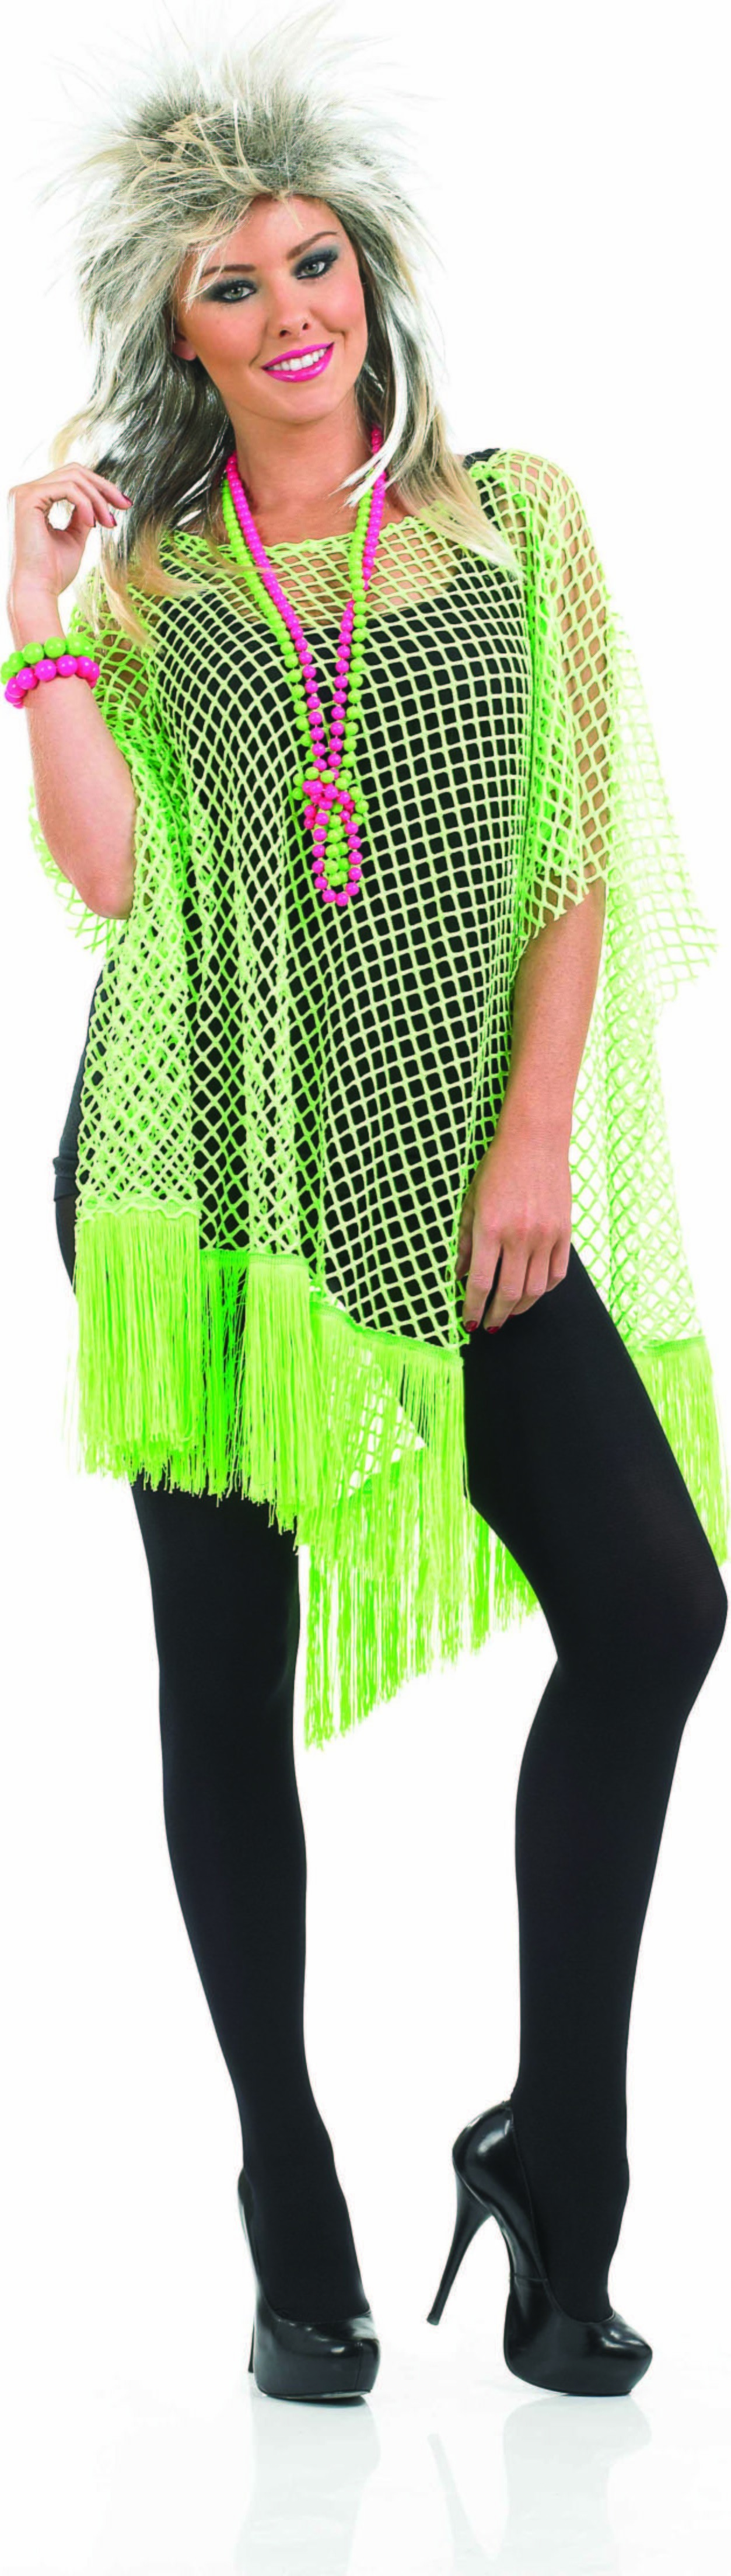 Ladies Neon Green Long Net Top Accessories - (Green)